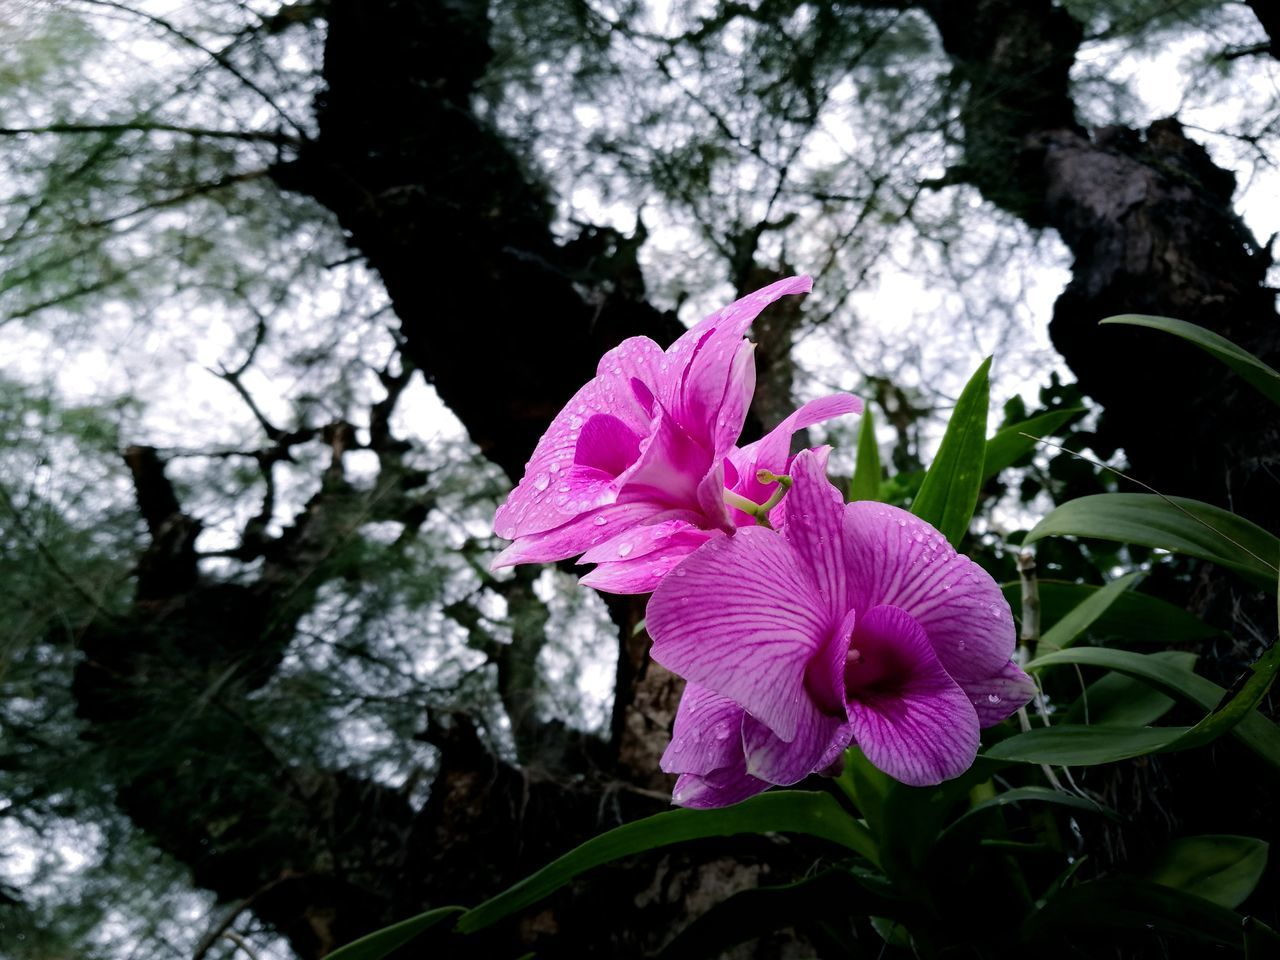 flower, fragility, petal, beauty in nature, growth, pink color, nature, freshness, day, flower head, blooming, no people, outdoors, tree, plant, close-up, petunia, periwinkle